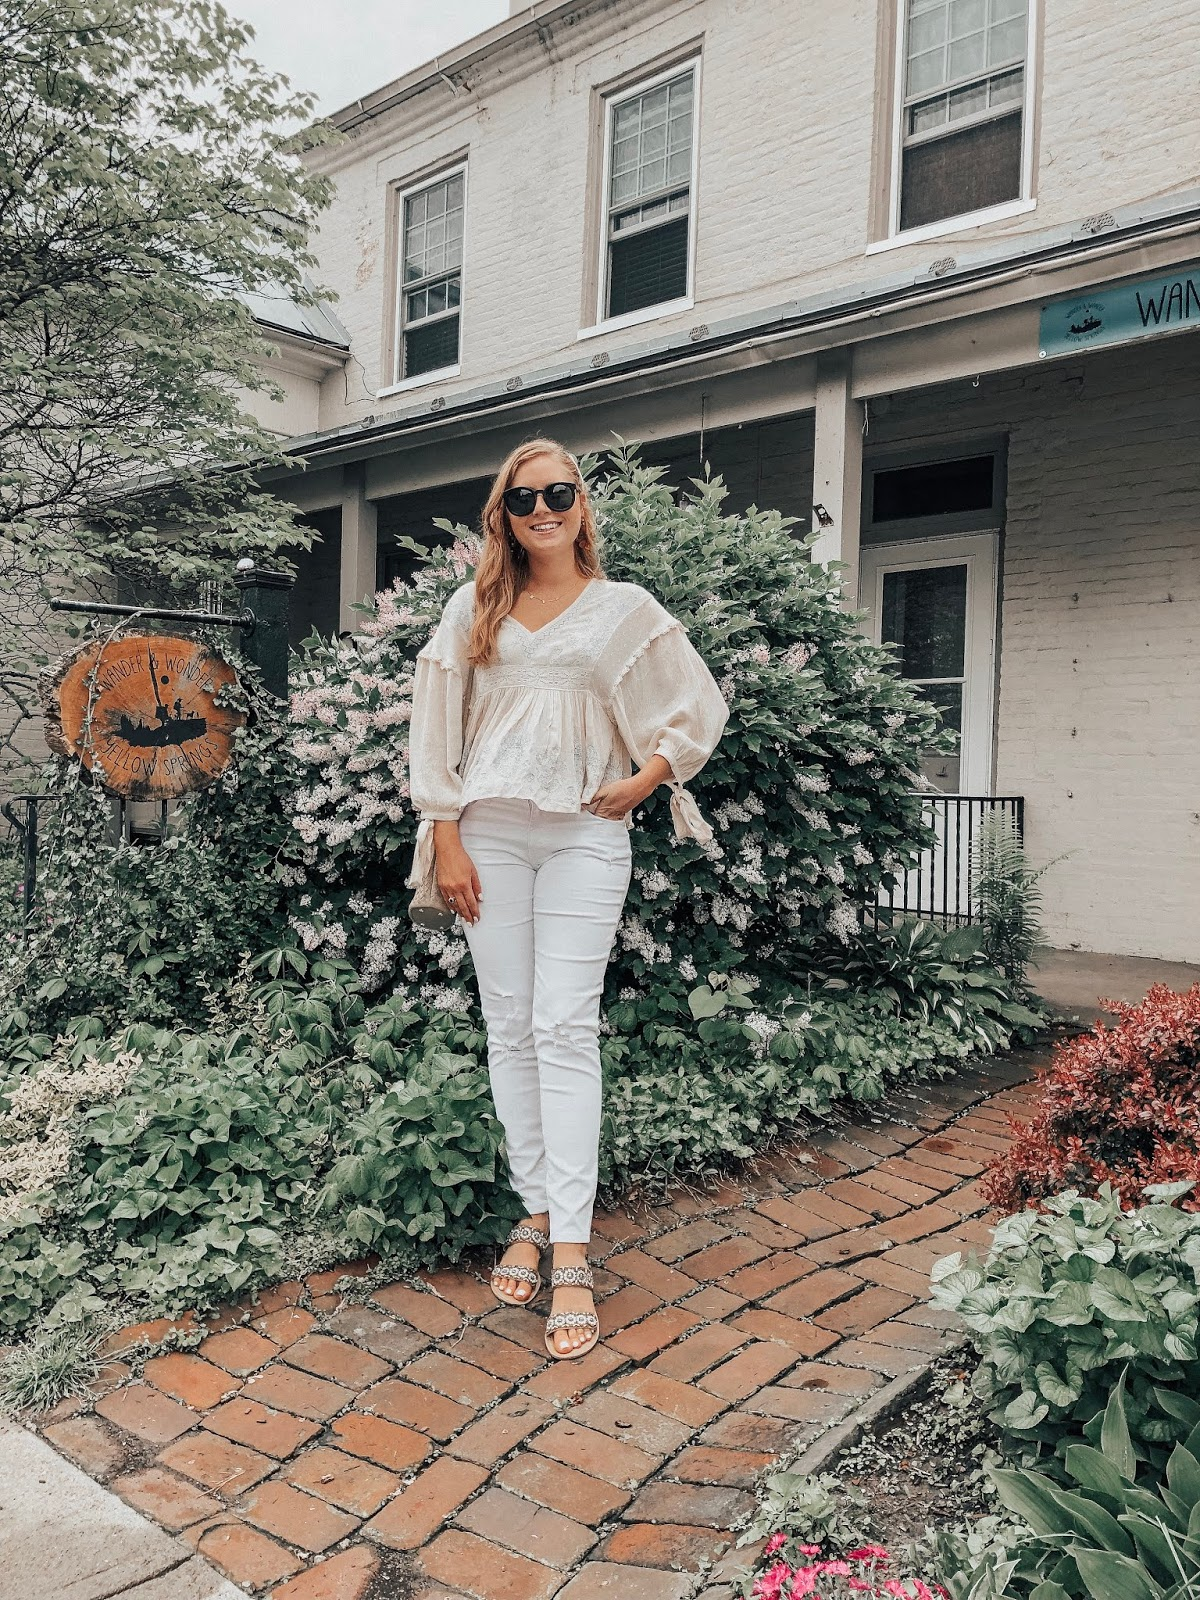 affordable by amanda is a tampa blogger sharing her favorite white denim jeans on a budget